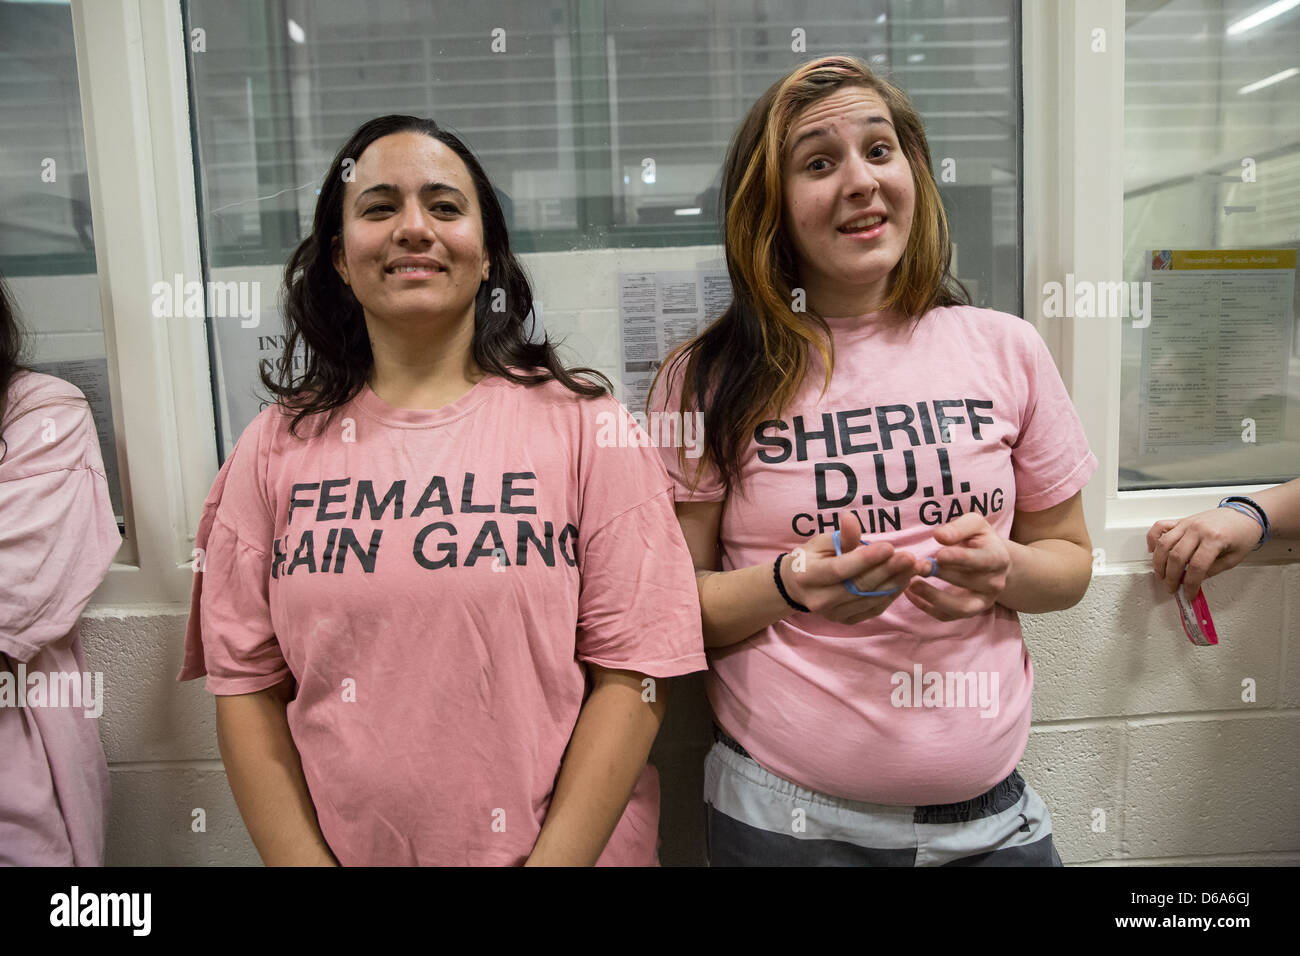 Two female inmates wait to shower at Estrella Jail  sc 1 st  Alamy & Two female inmates wait to shower at Estrella Jail Stock Photo ...